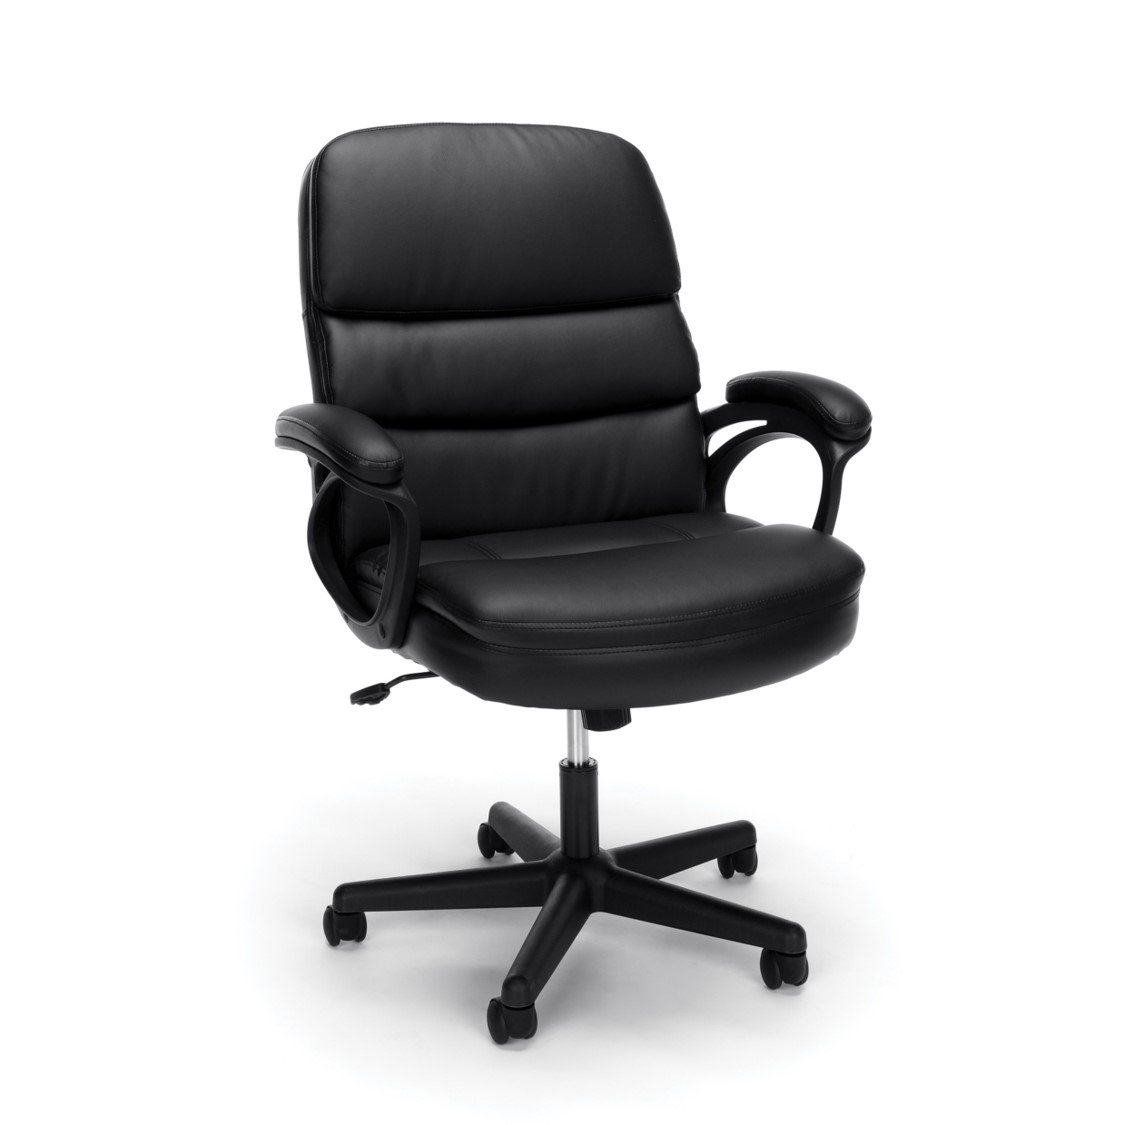 Essentials by OFM Leather Executive Chair, Ergonomic Managers Computer/Office Chair, Black (ESS-6025)